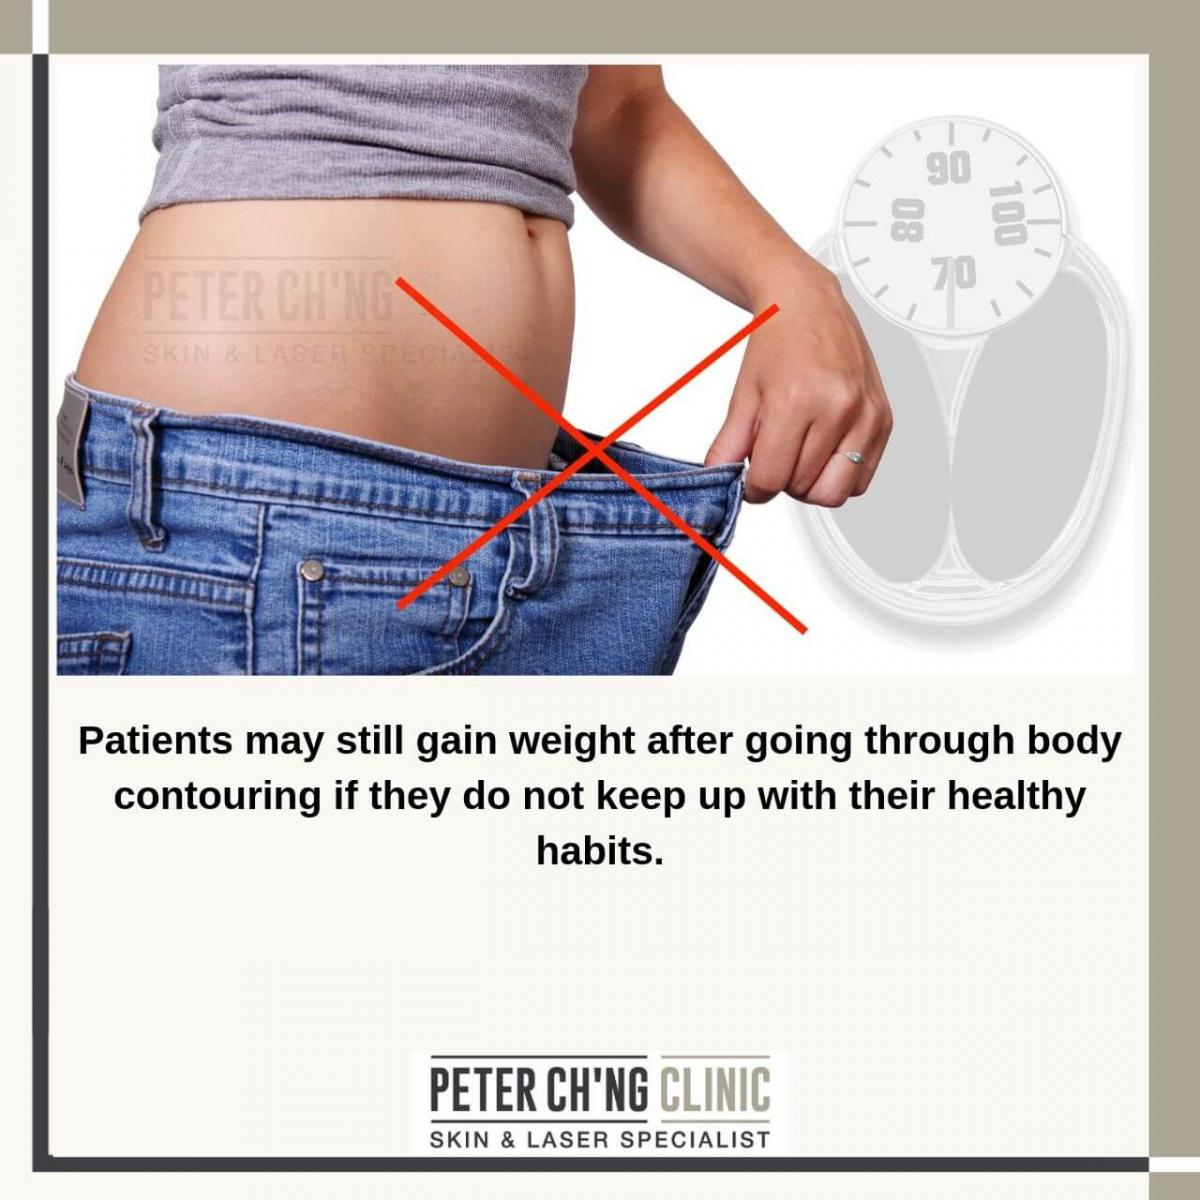 Body contouring prevents weight gain